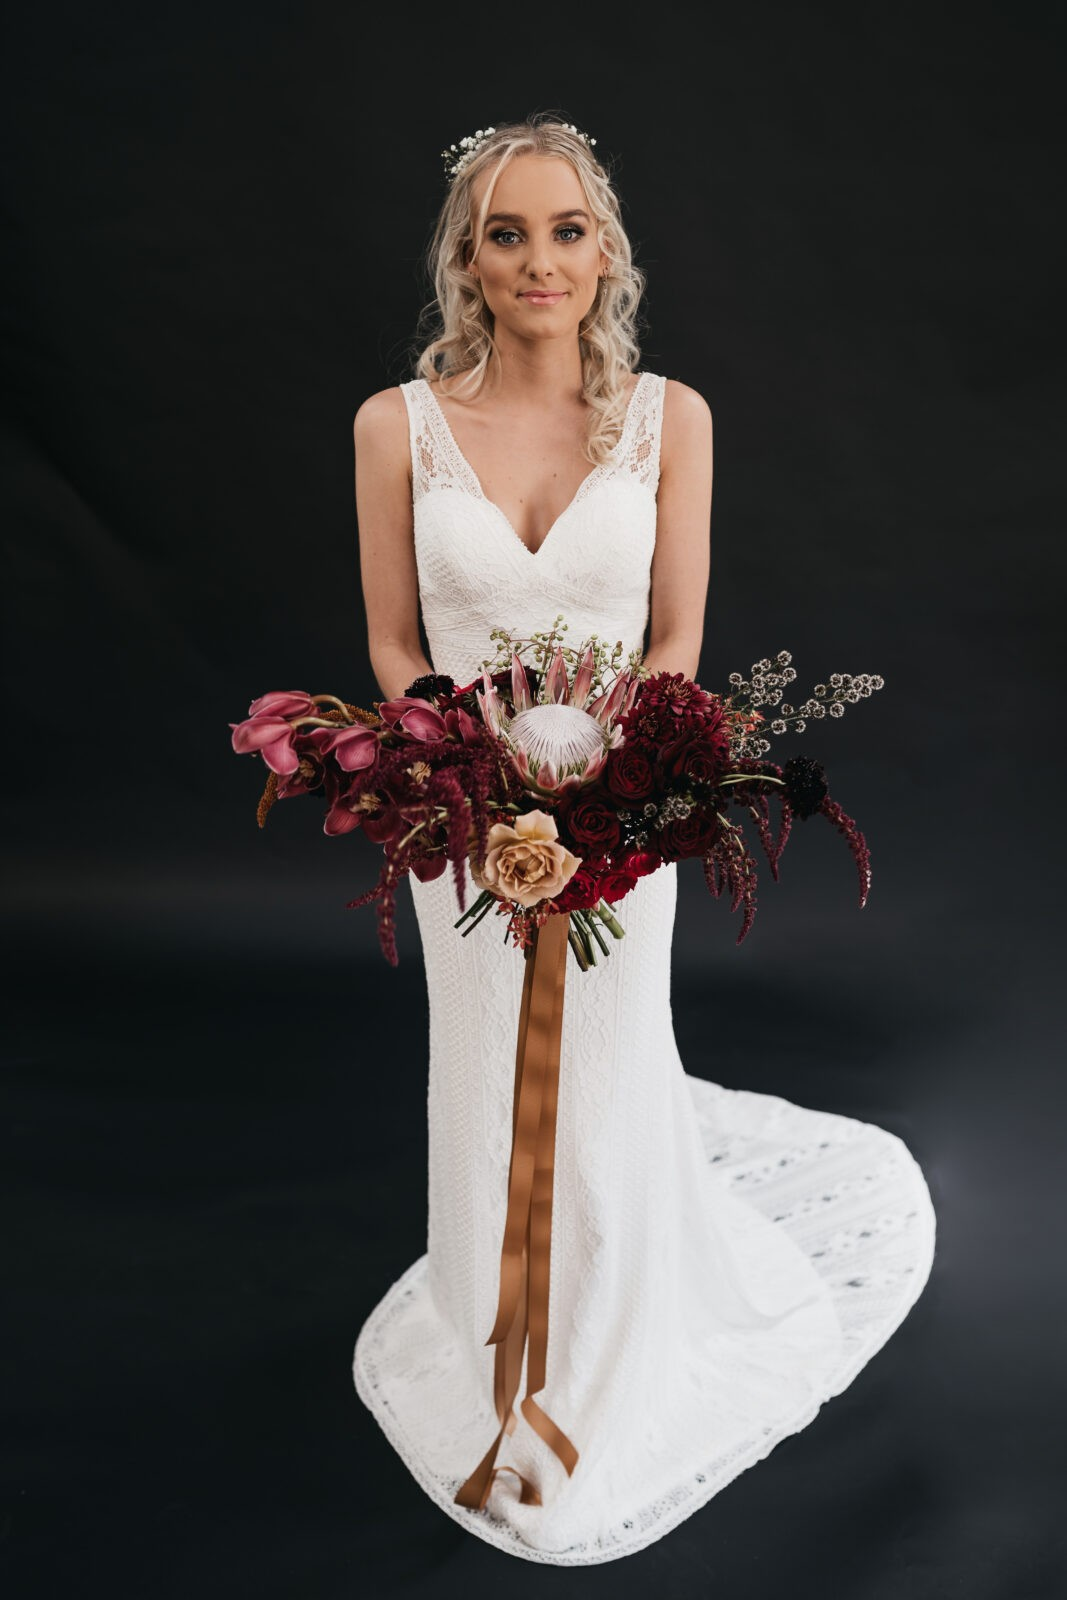 Styled Shoot - Full front